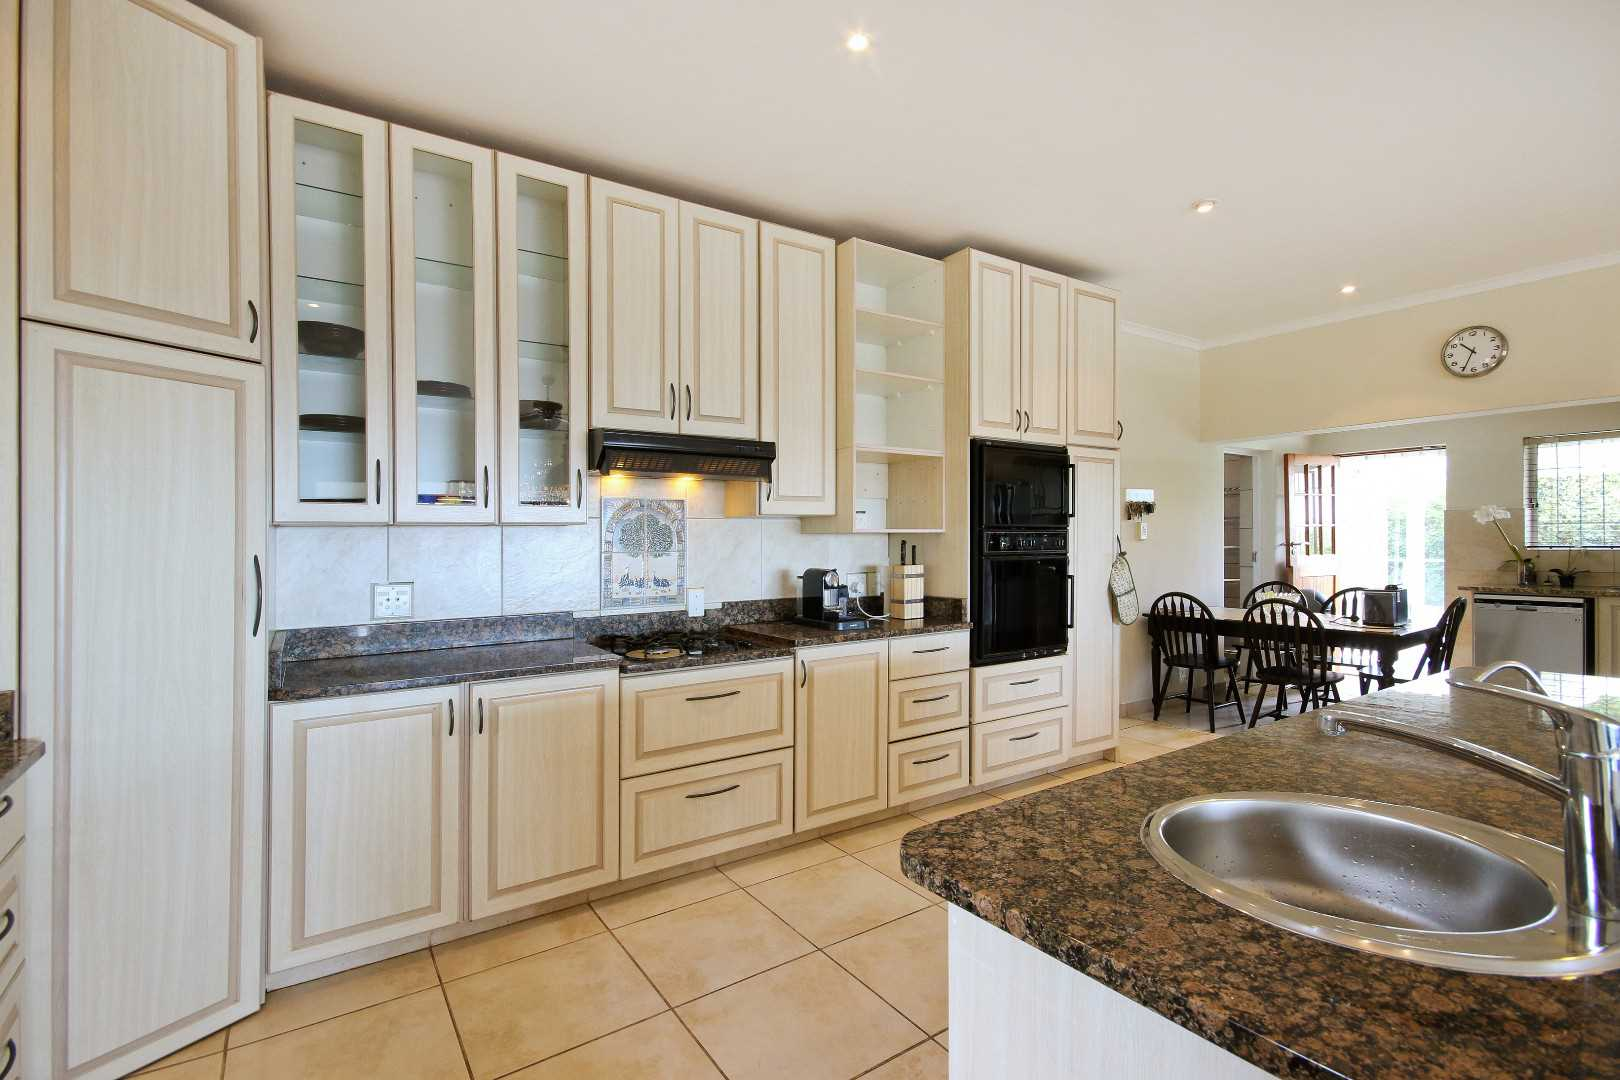 Built in gas hob / extr and double electric oven